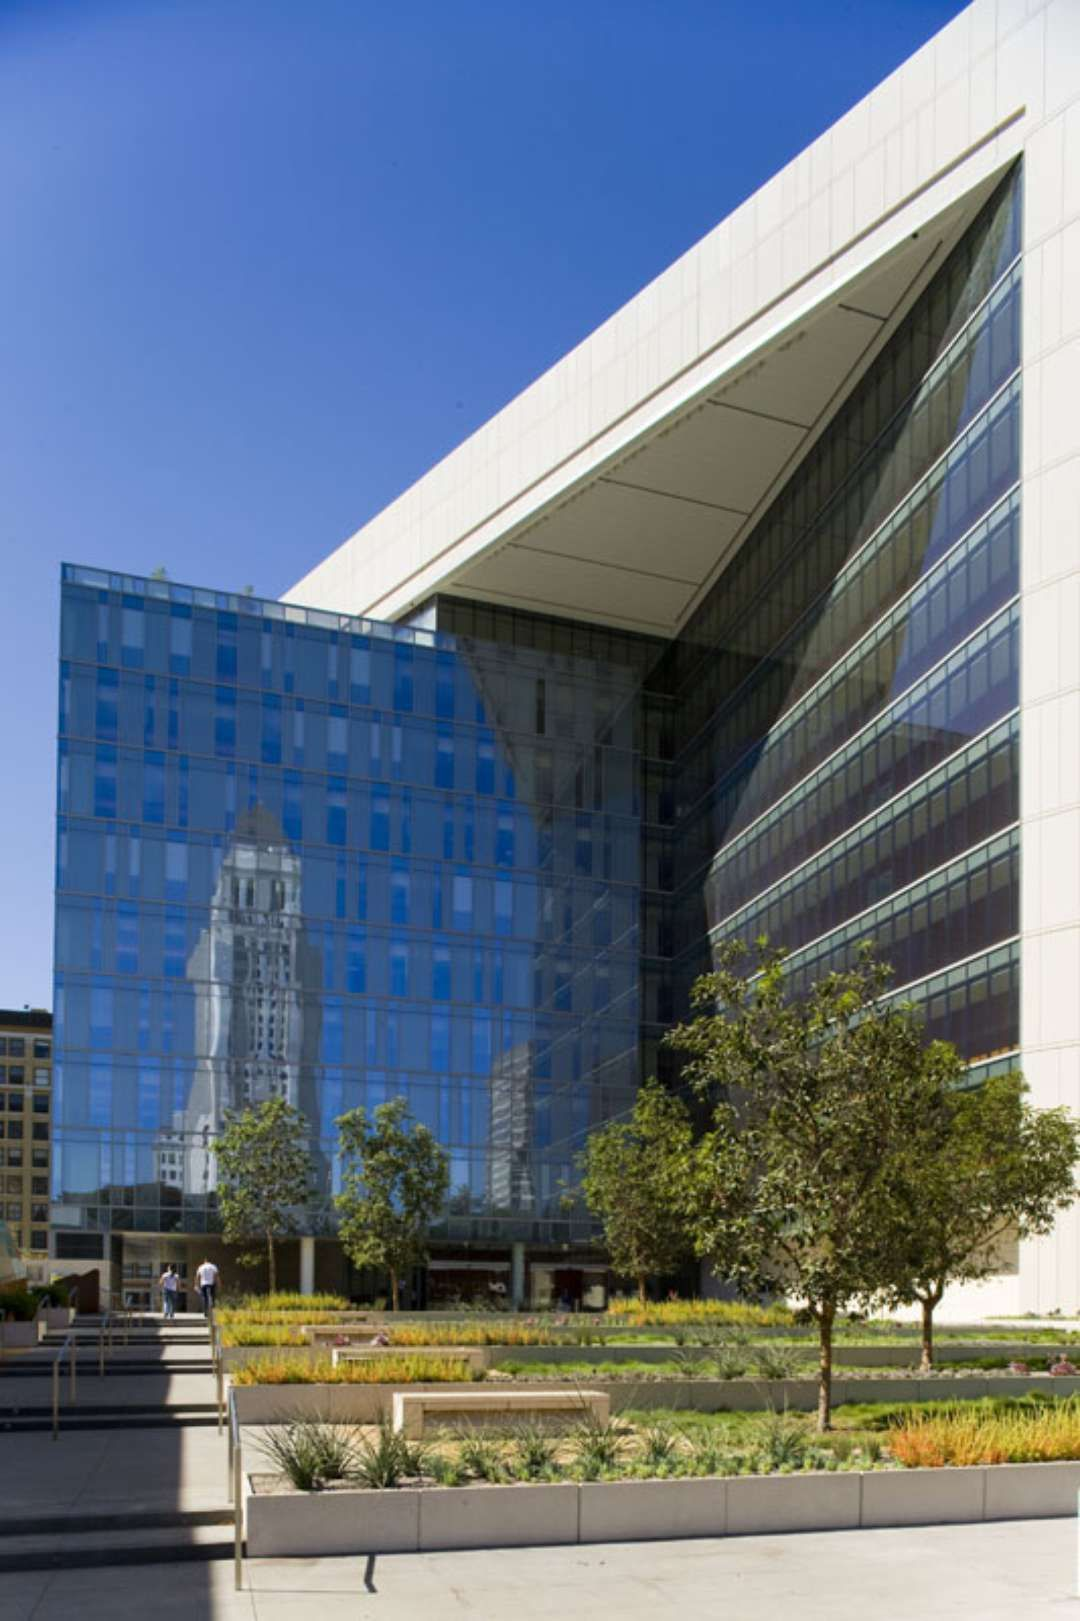 Designed To Fit Within The Urban Context Of The Los Angeles Civic Center The New 500 000 Square Foot Los Angeles Police Depart Architecture Facade Design Lapd